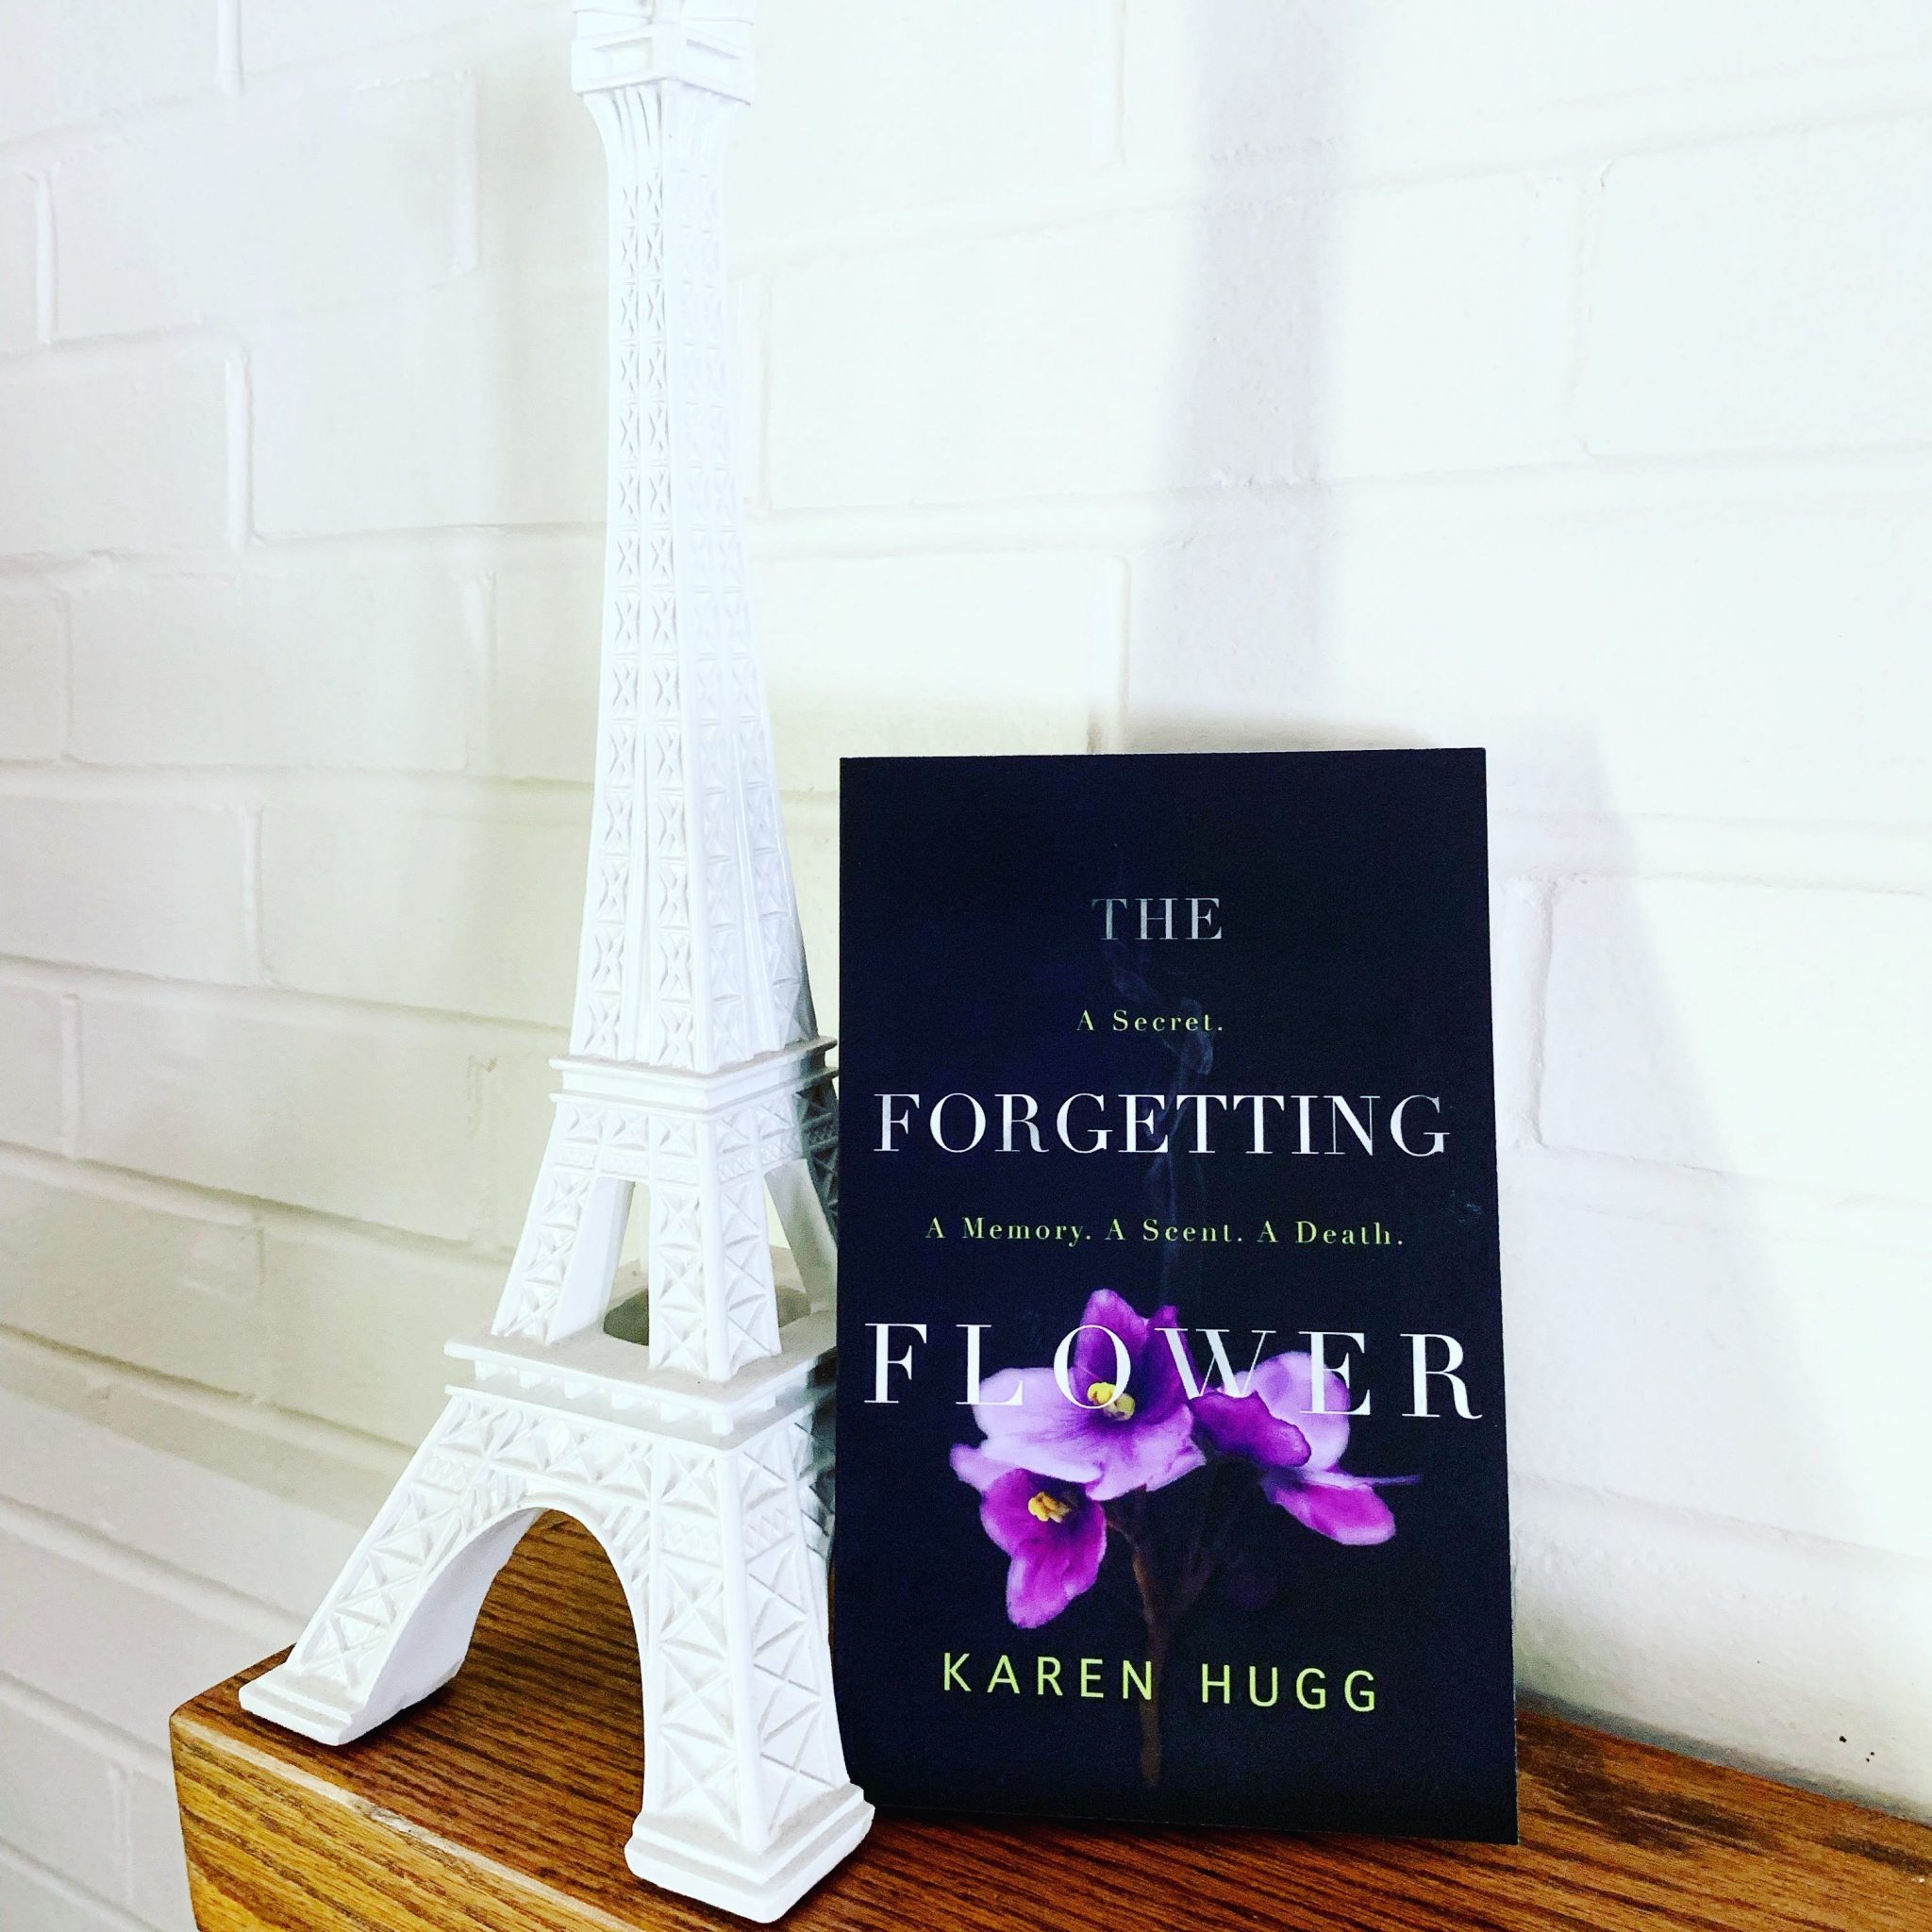 The Forgetting Flower and Eiffel Tower, Karen Hugg, http://www.karenhugg.com #books #novel #TheForgettingFlower #literarythrillers #Paris #novelssetinParis #authors #plants